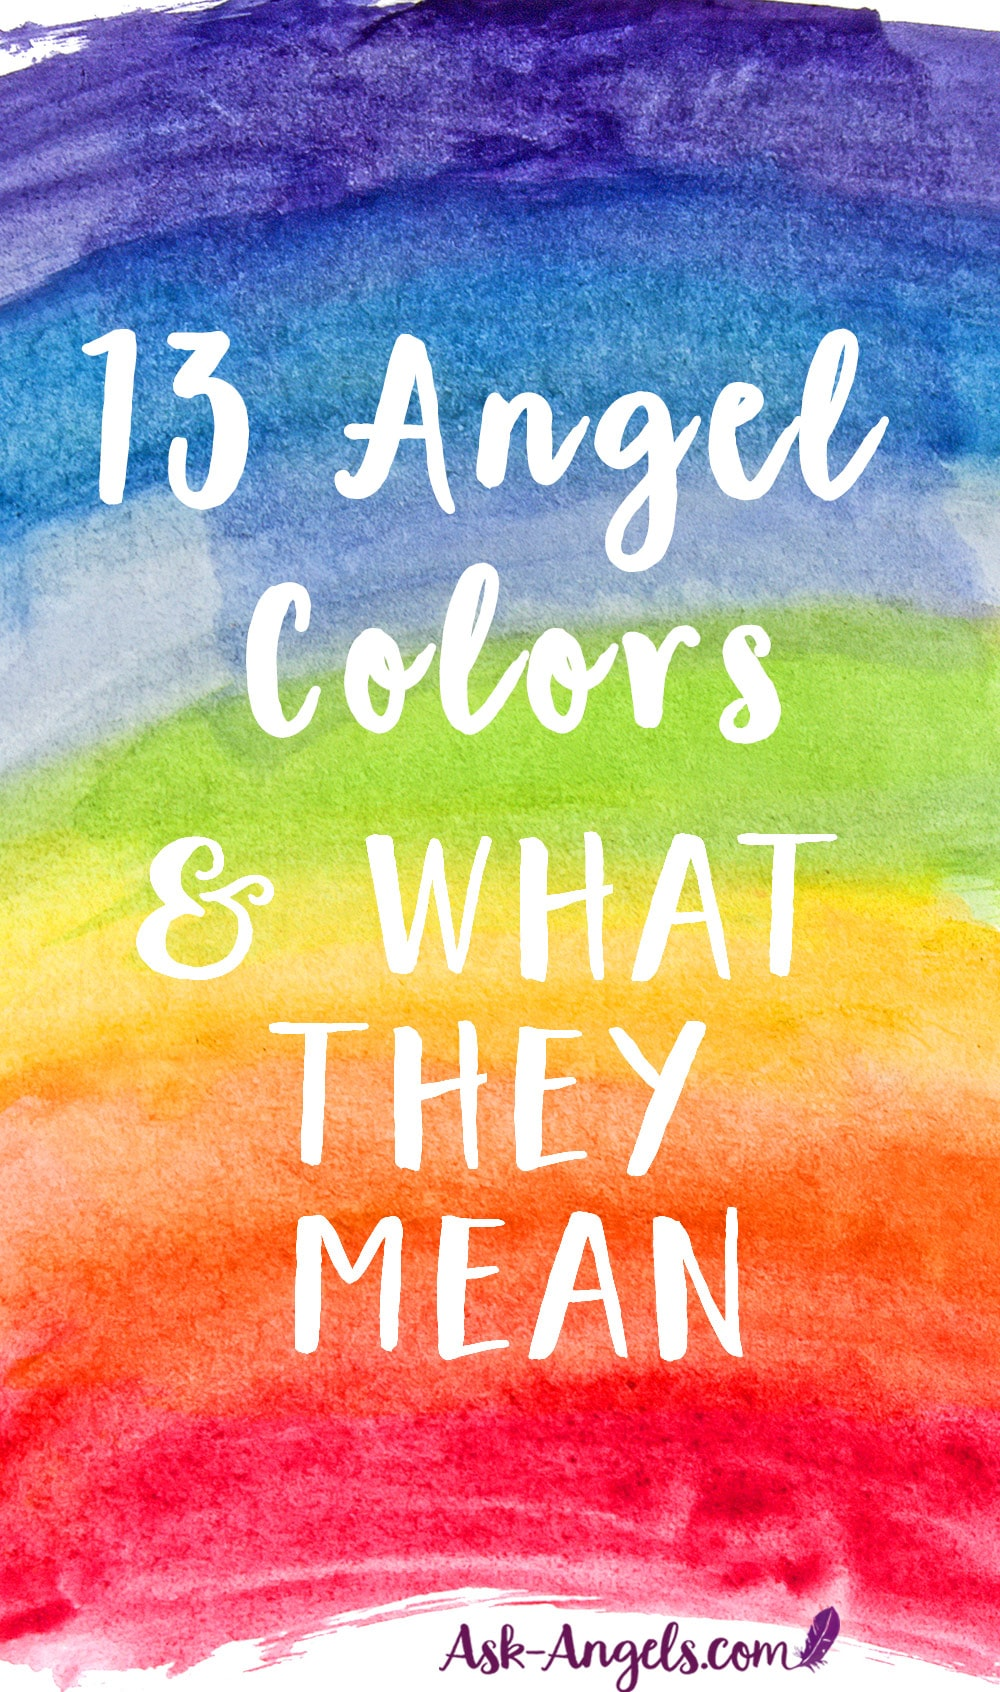 Angel Colors: Using Color to Invoke your Angels